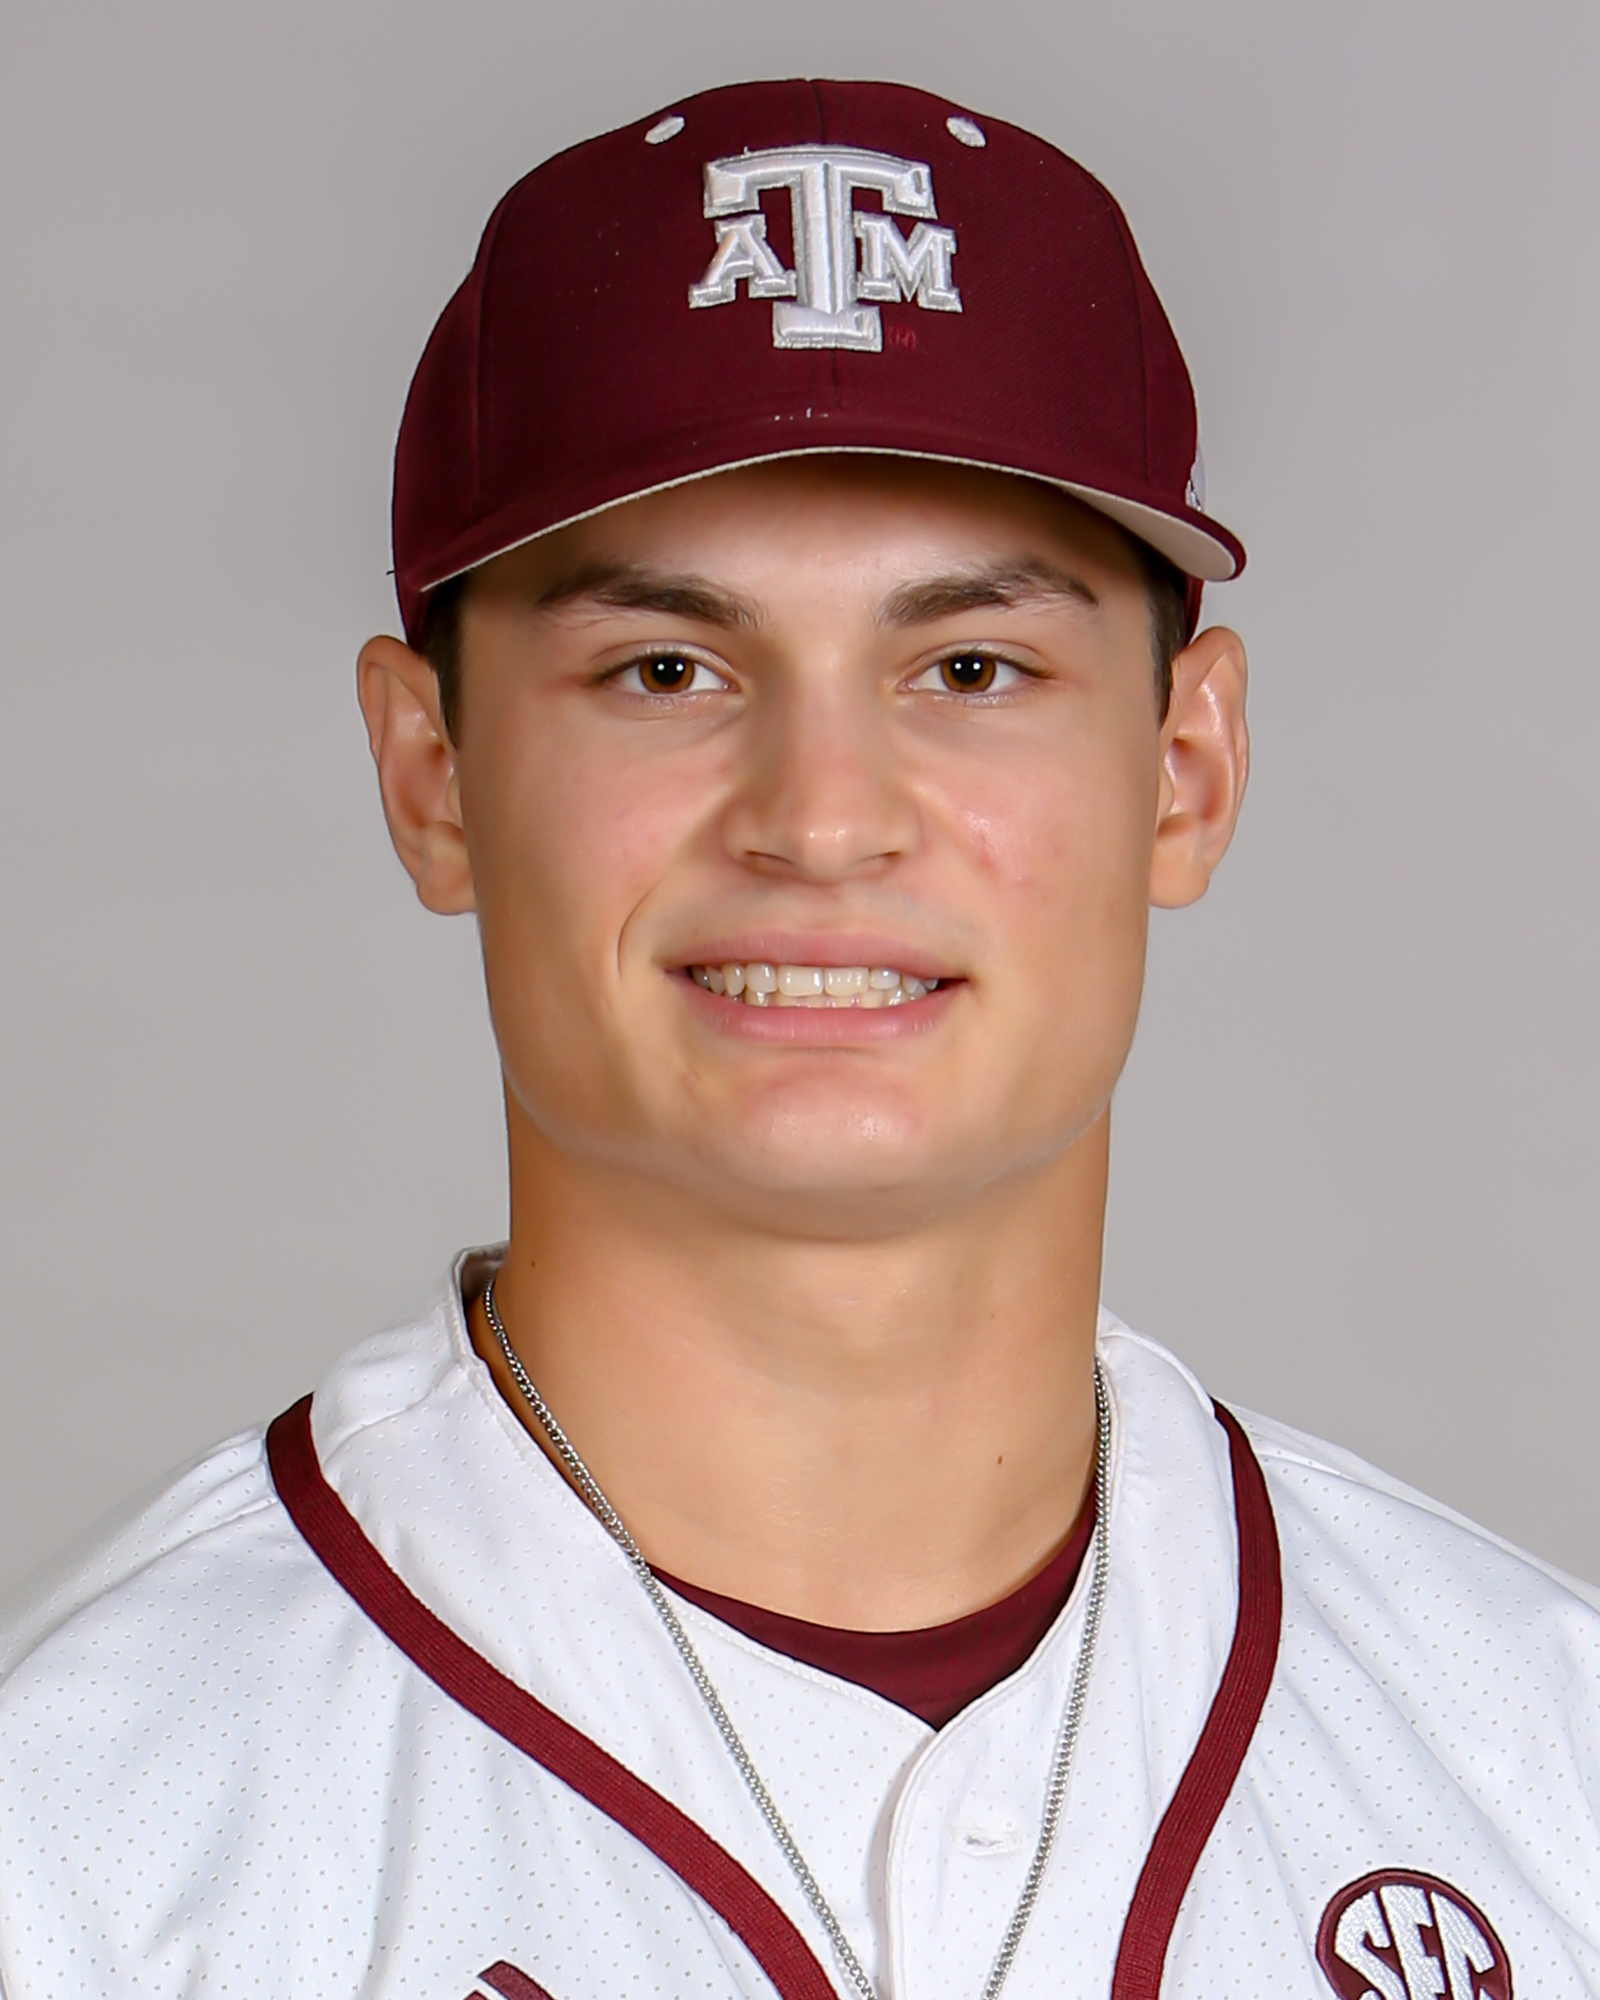 11981f4a50c34 2019 Baseball Roster - Texas A M Athletics - Home of the 12th Man